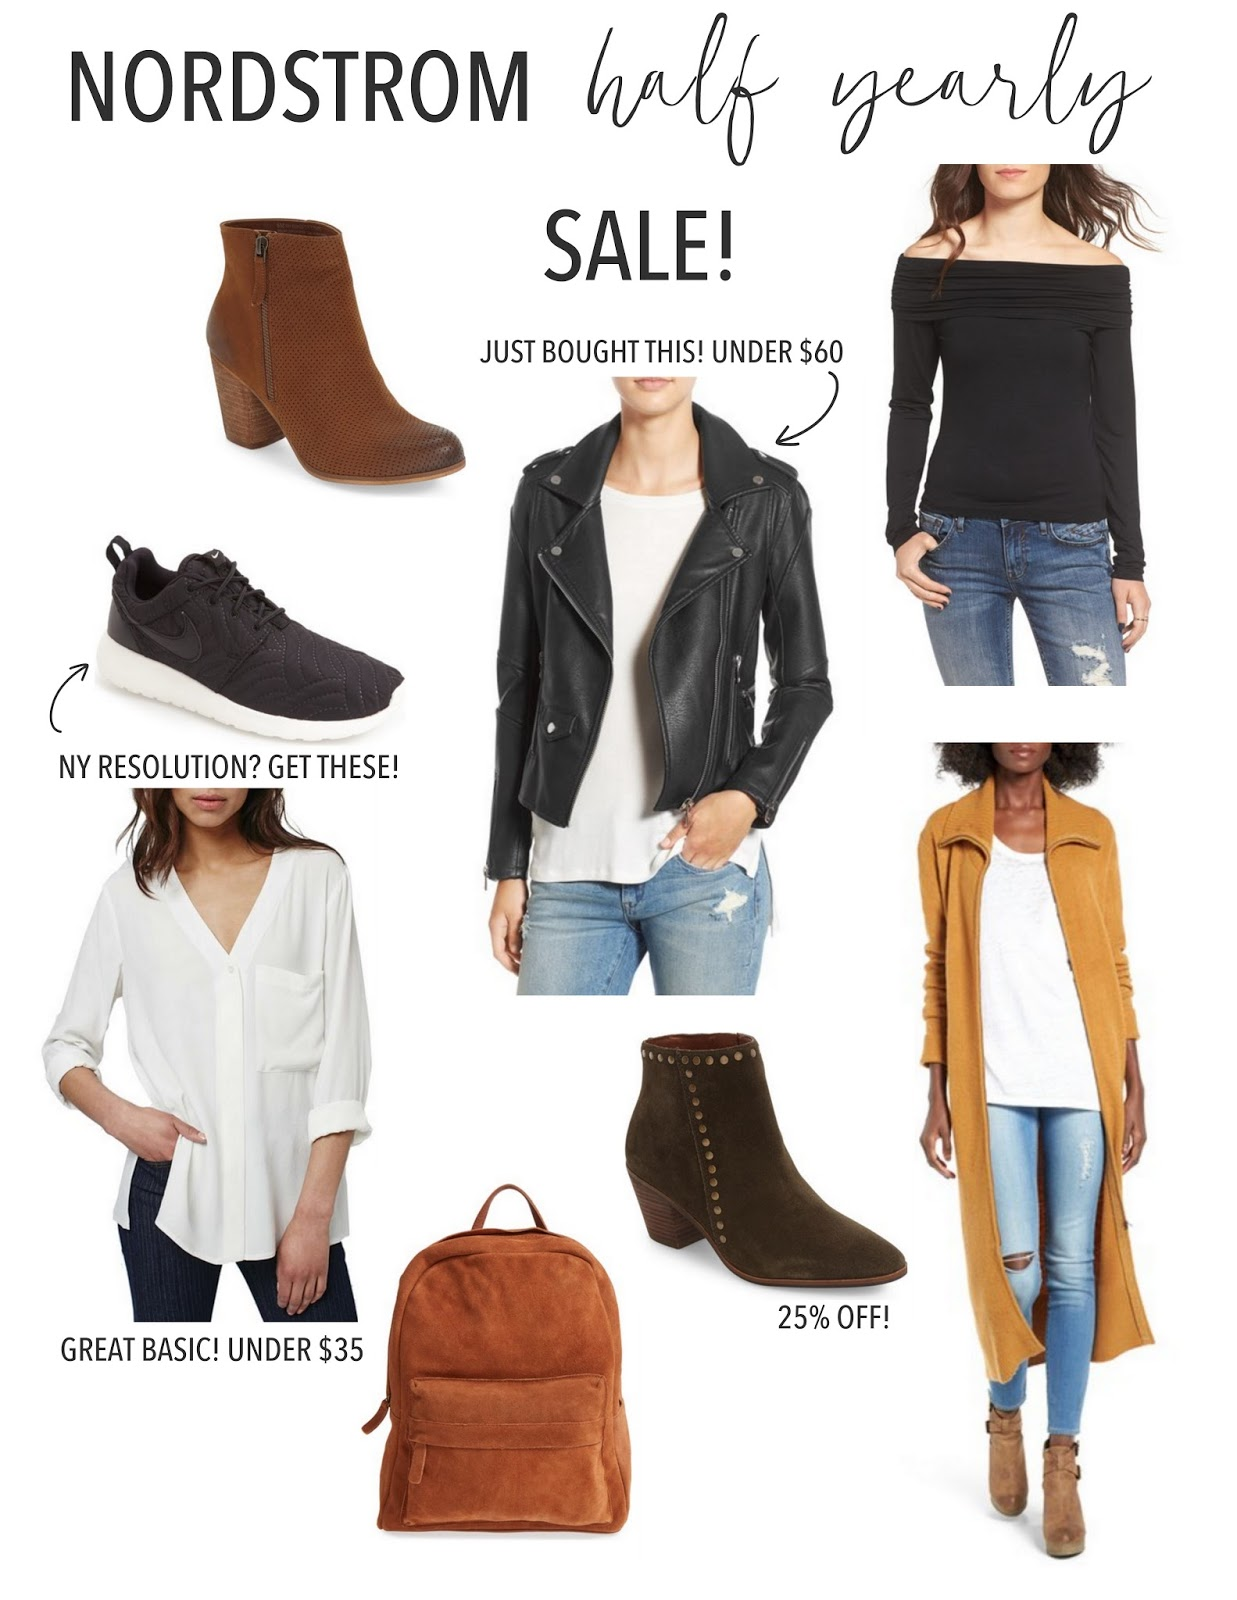 Nordstrom Half Yearly Sale - Booties, Clothing, Accessories